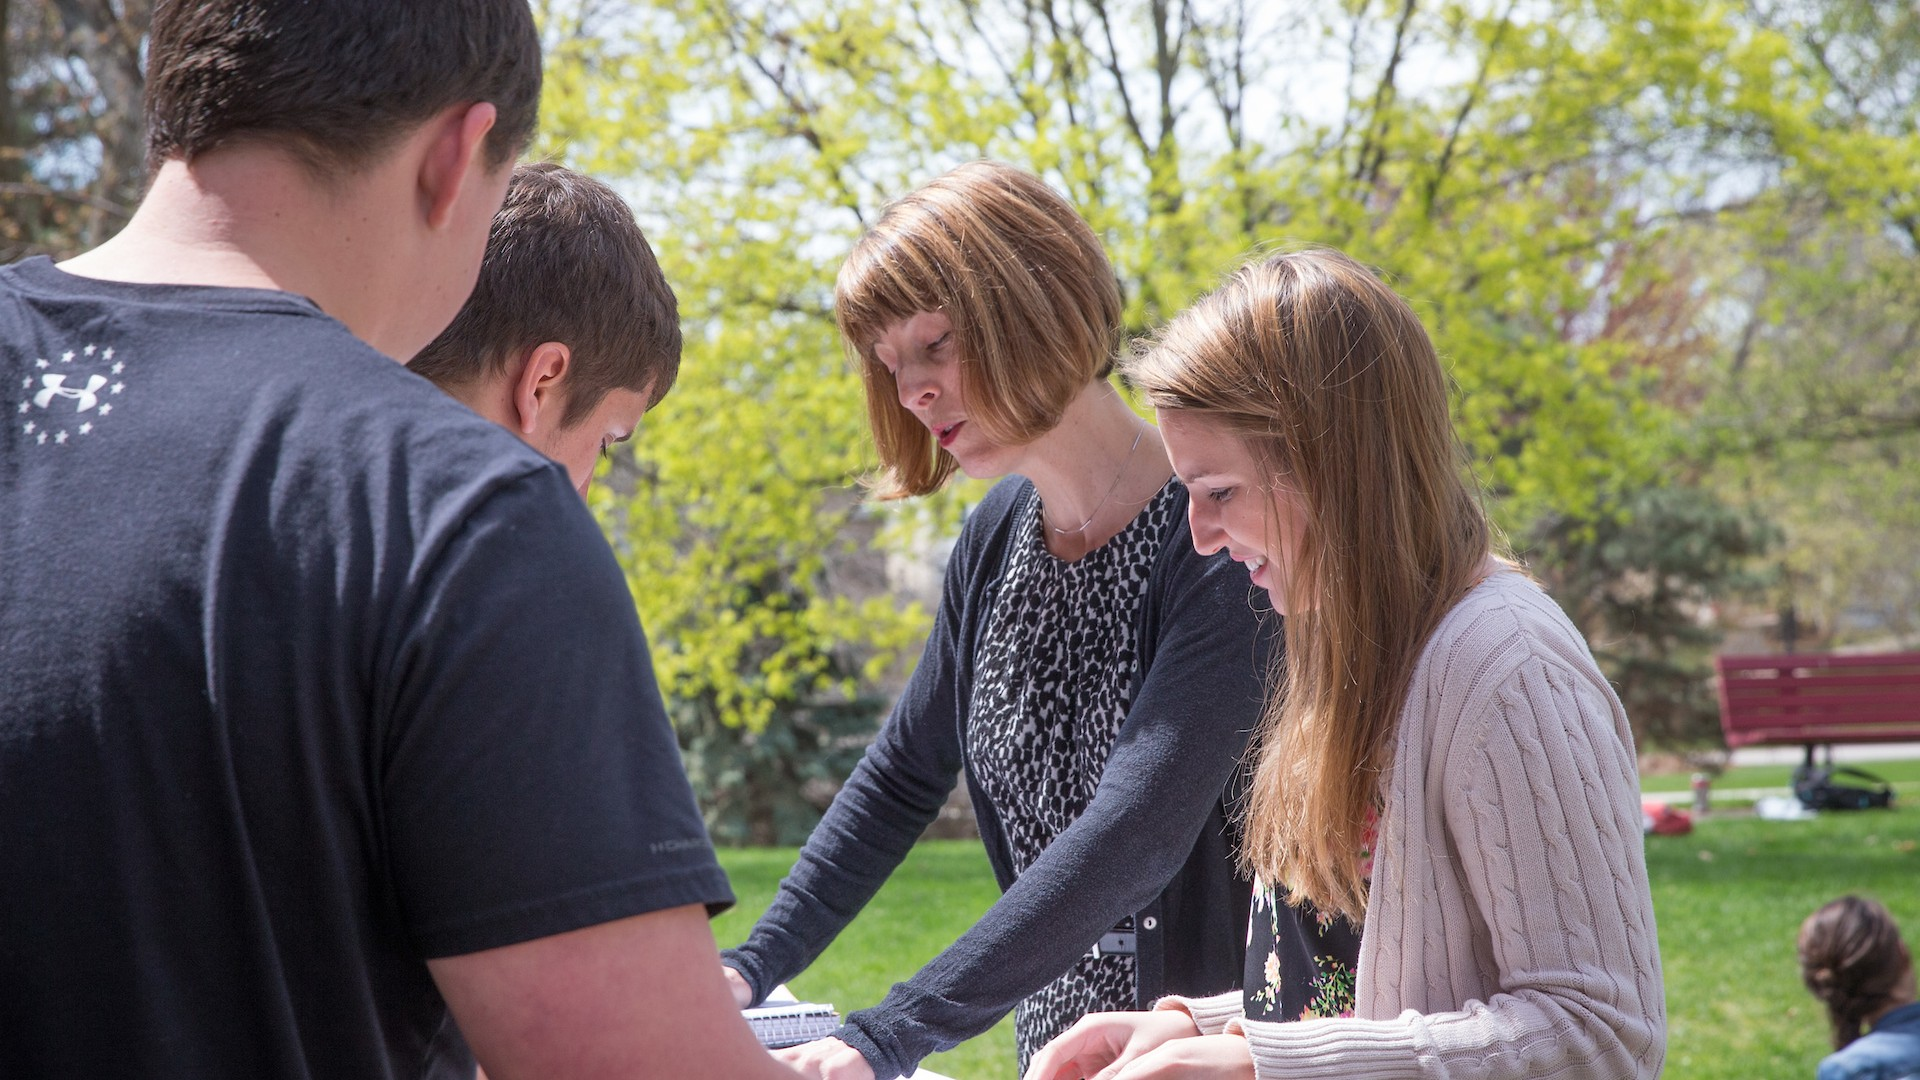 female instructor teaching students outdoors